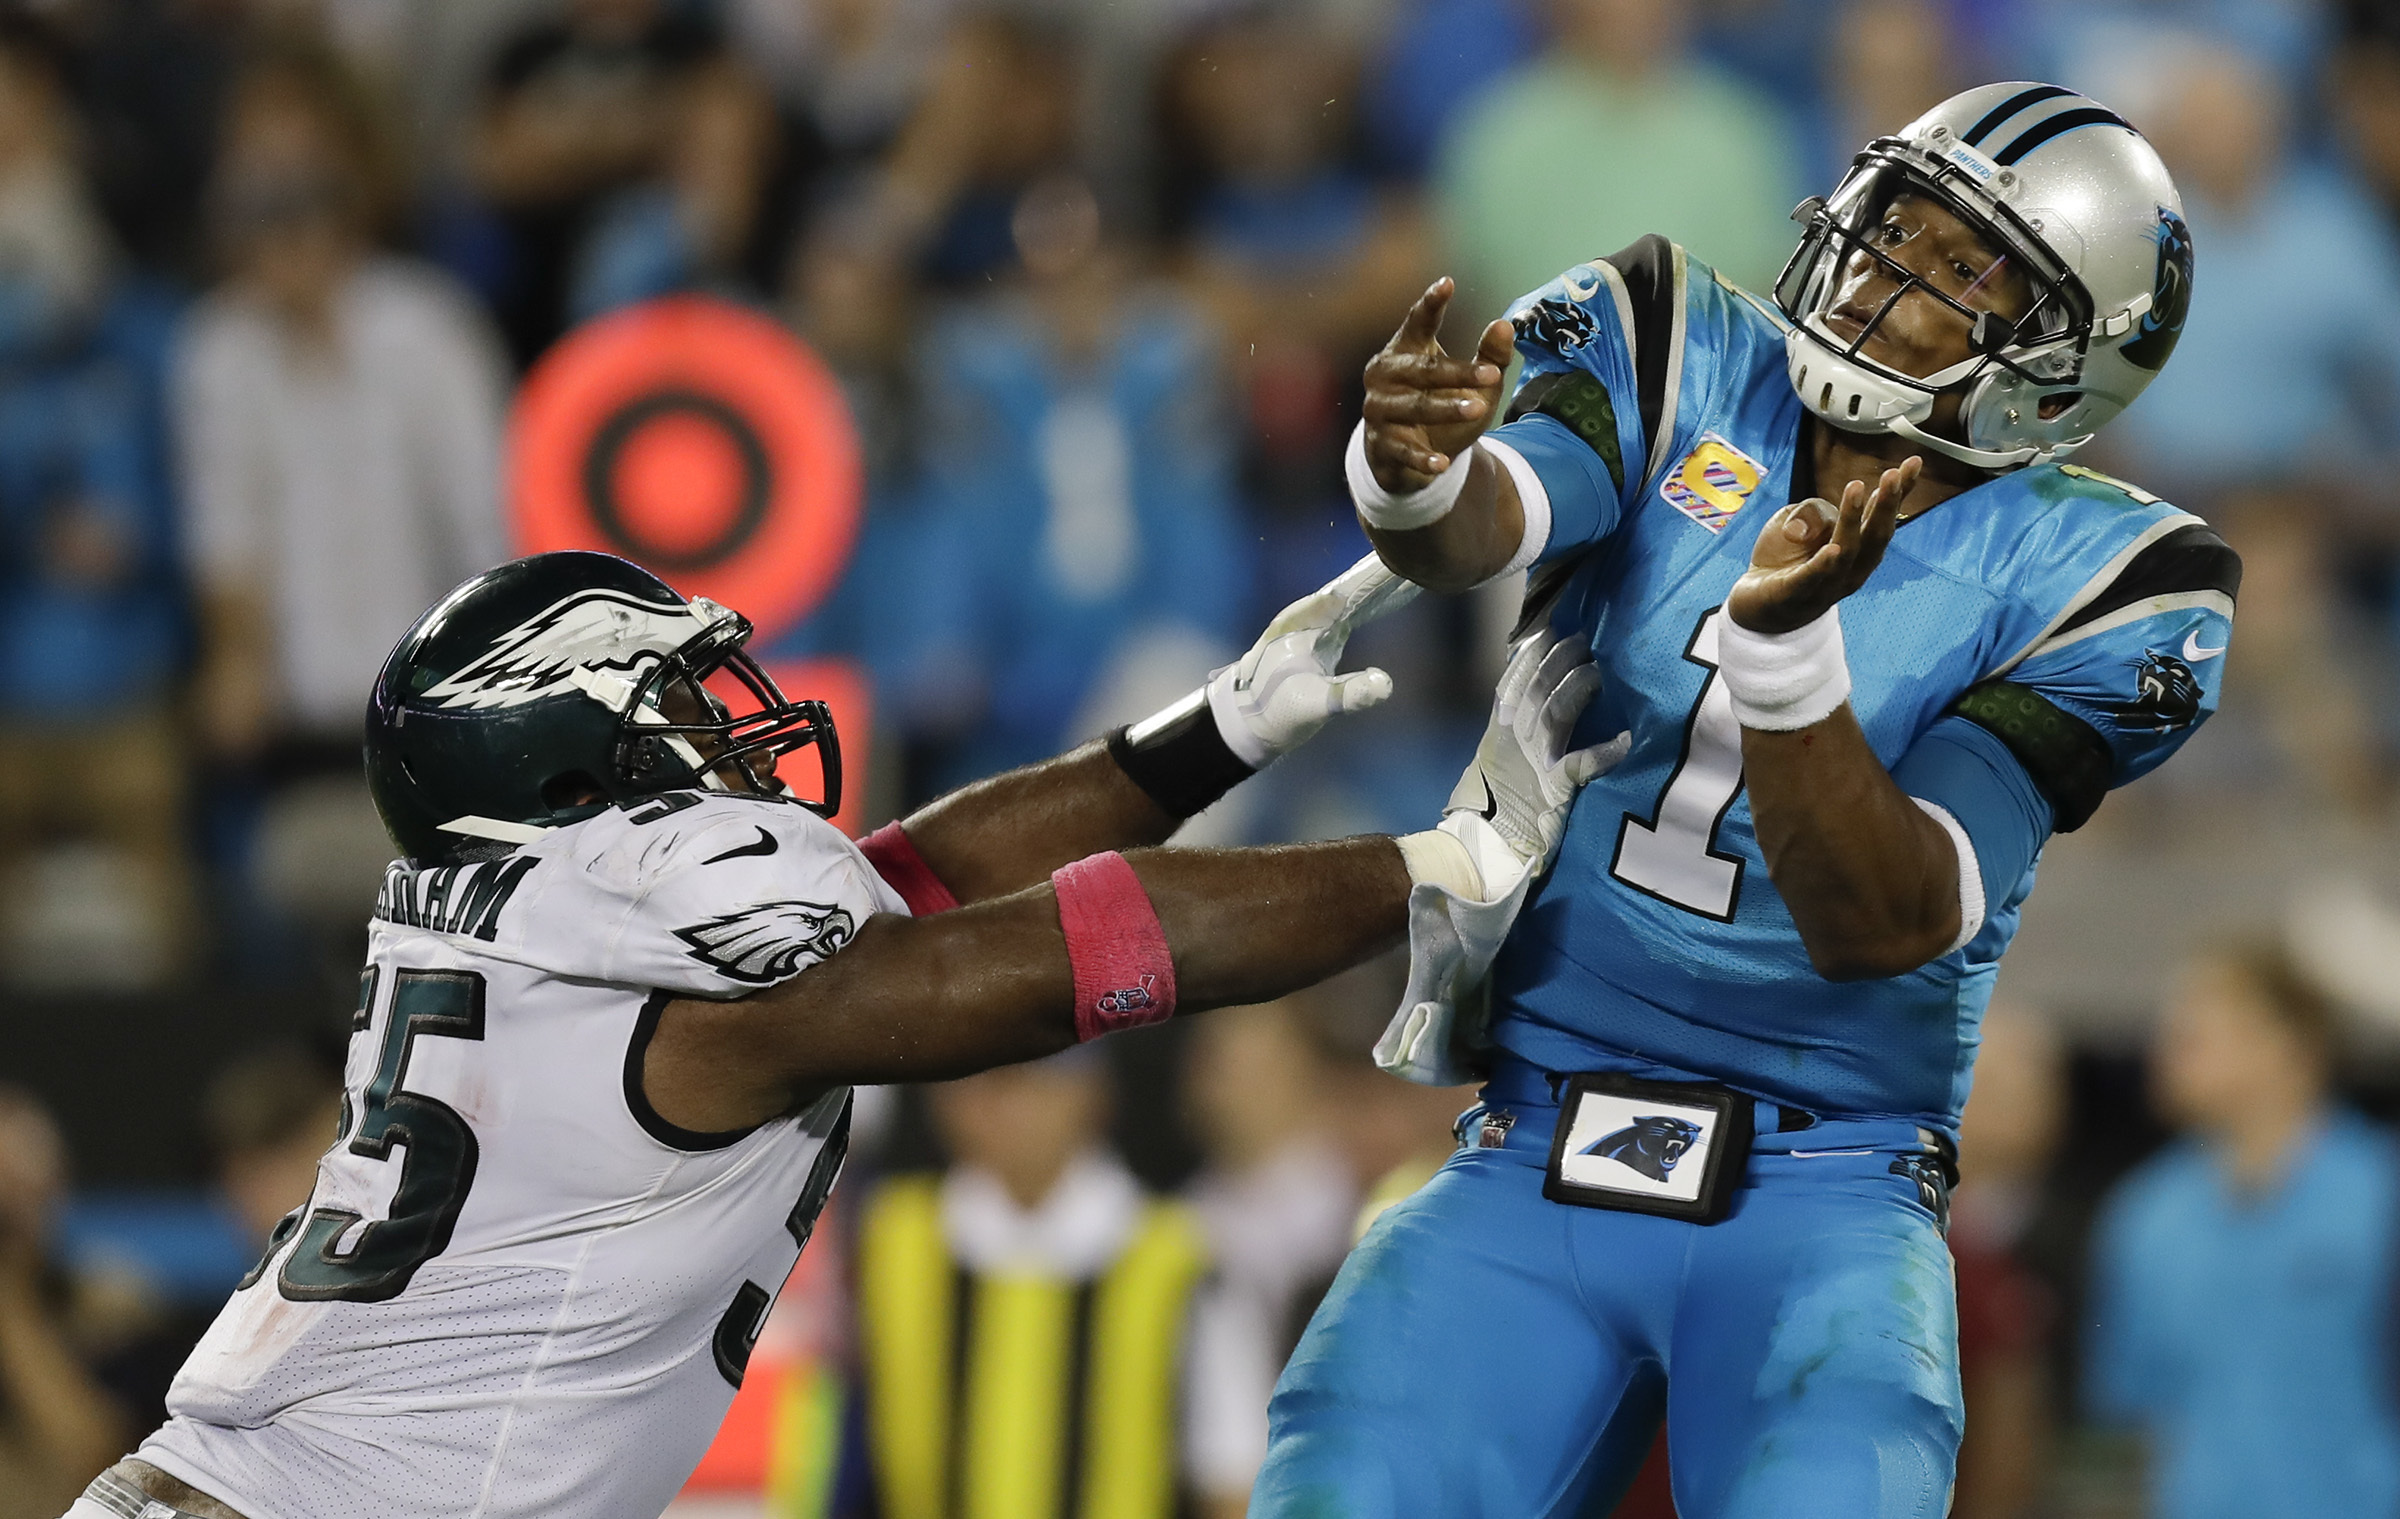 Eagles defensive end Brandon Graham pressures Carolina Panthers quarterback Cam Newton on Thursday, October 12, 2017 in Charlotte, NC. YONG KIM / Staff Photographer